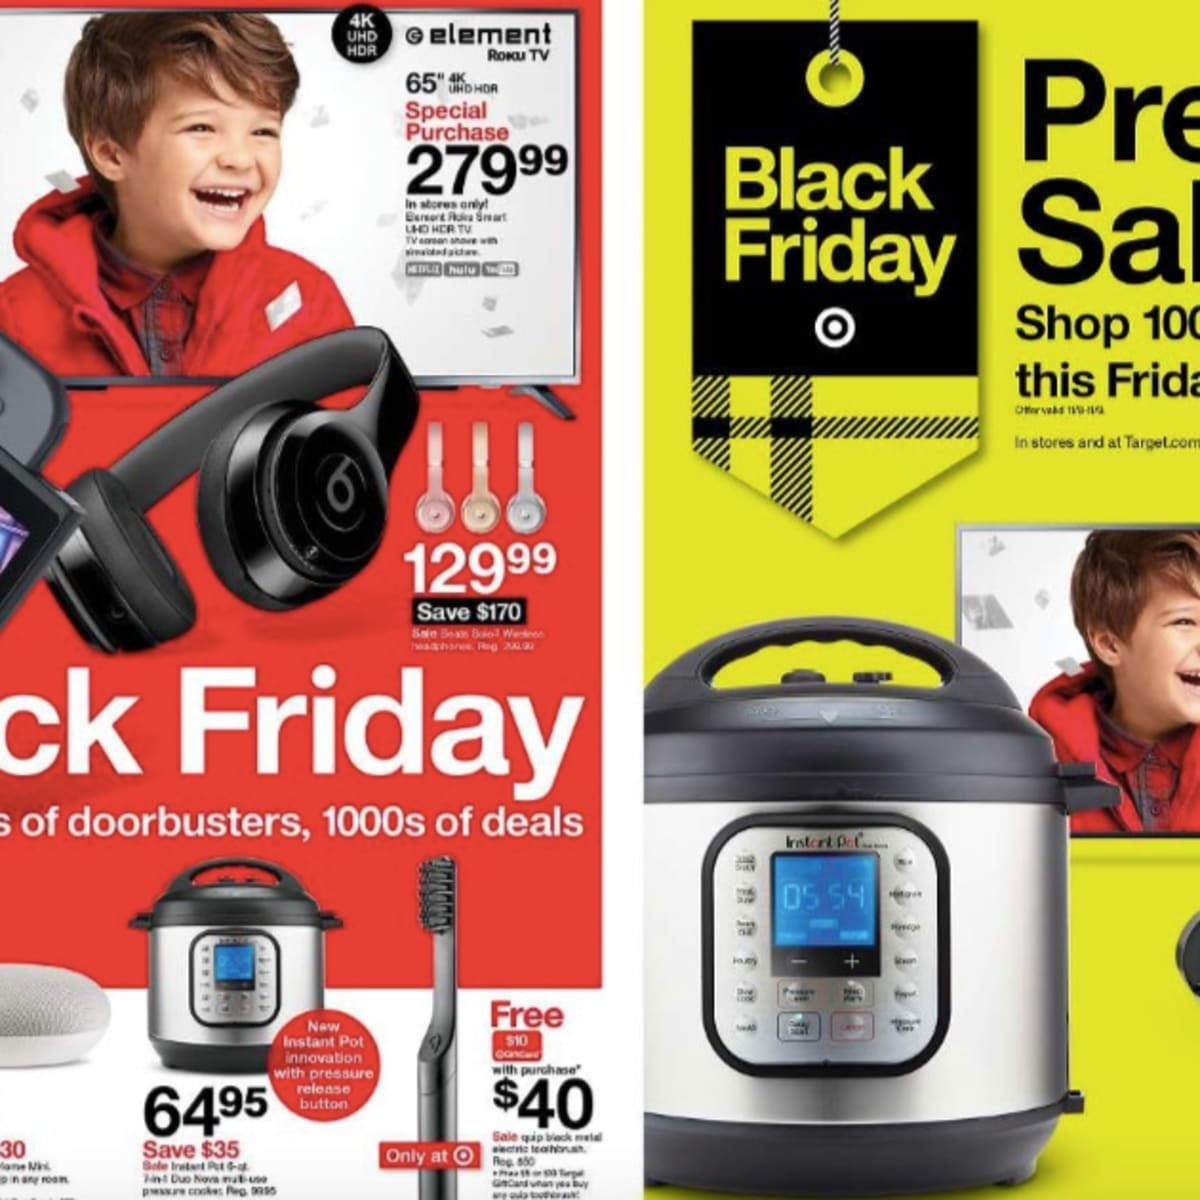 Target Releases Its Black Friday 2019 Ad And Deals Start This Friday Bring Me The News